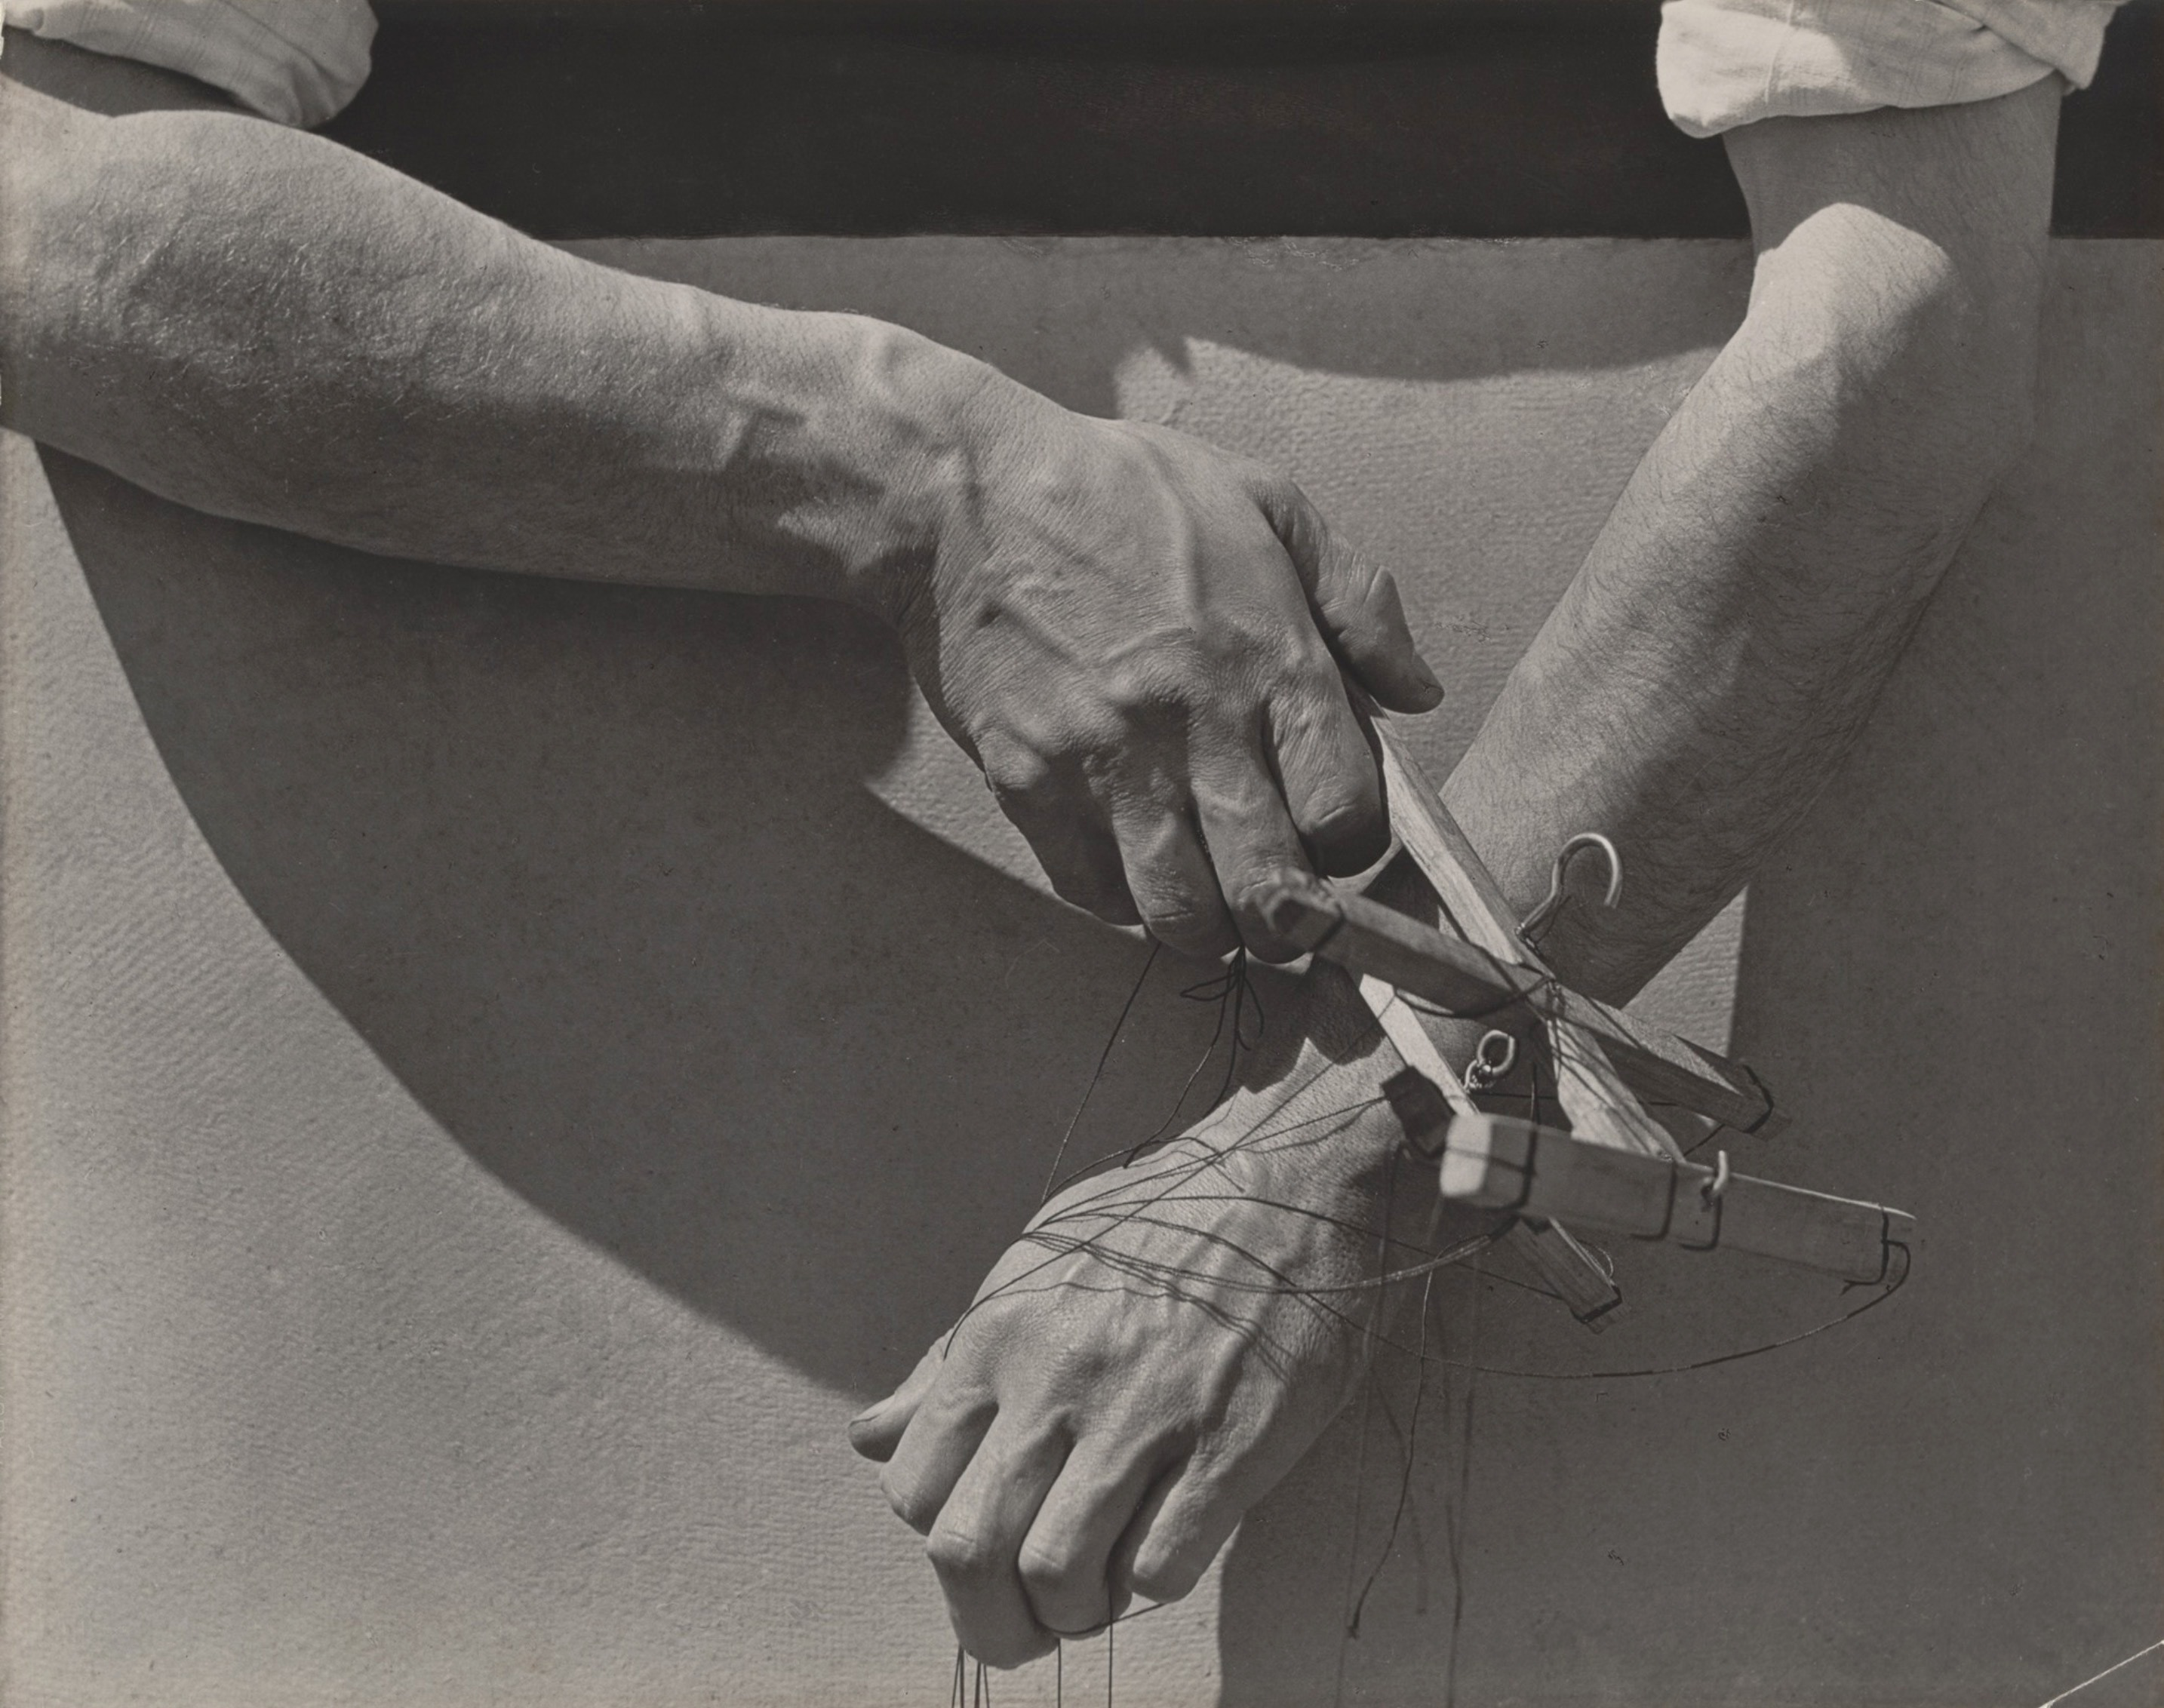 Tina Modotti, Hands of Marionette Player, 1929